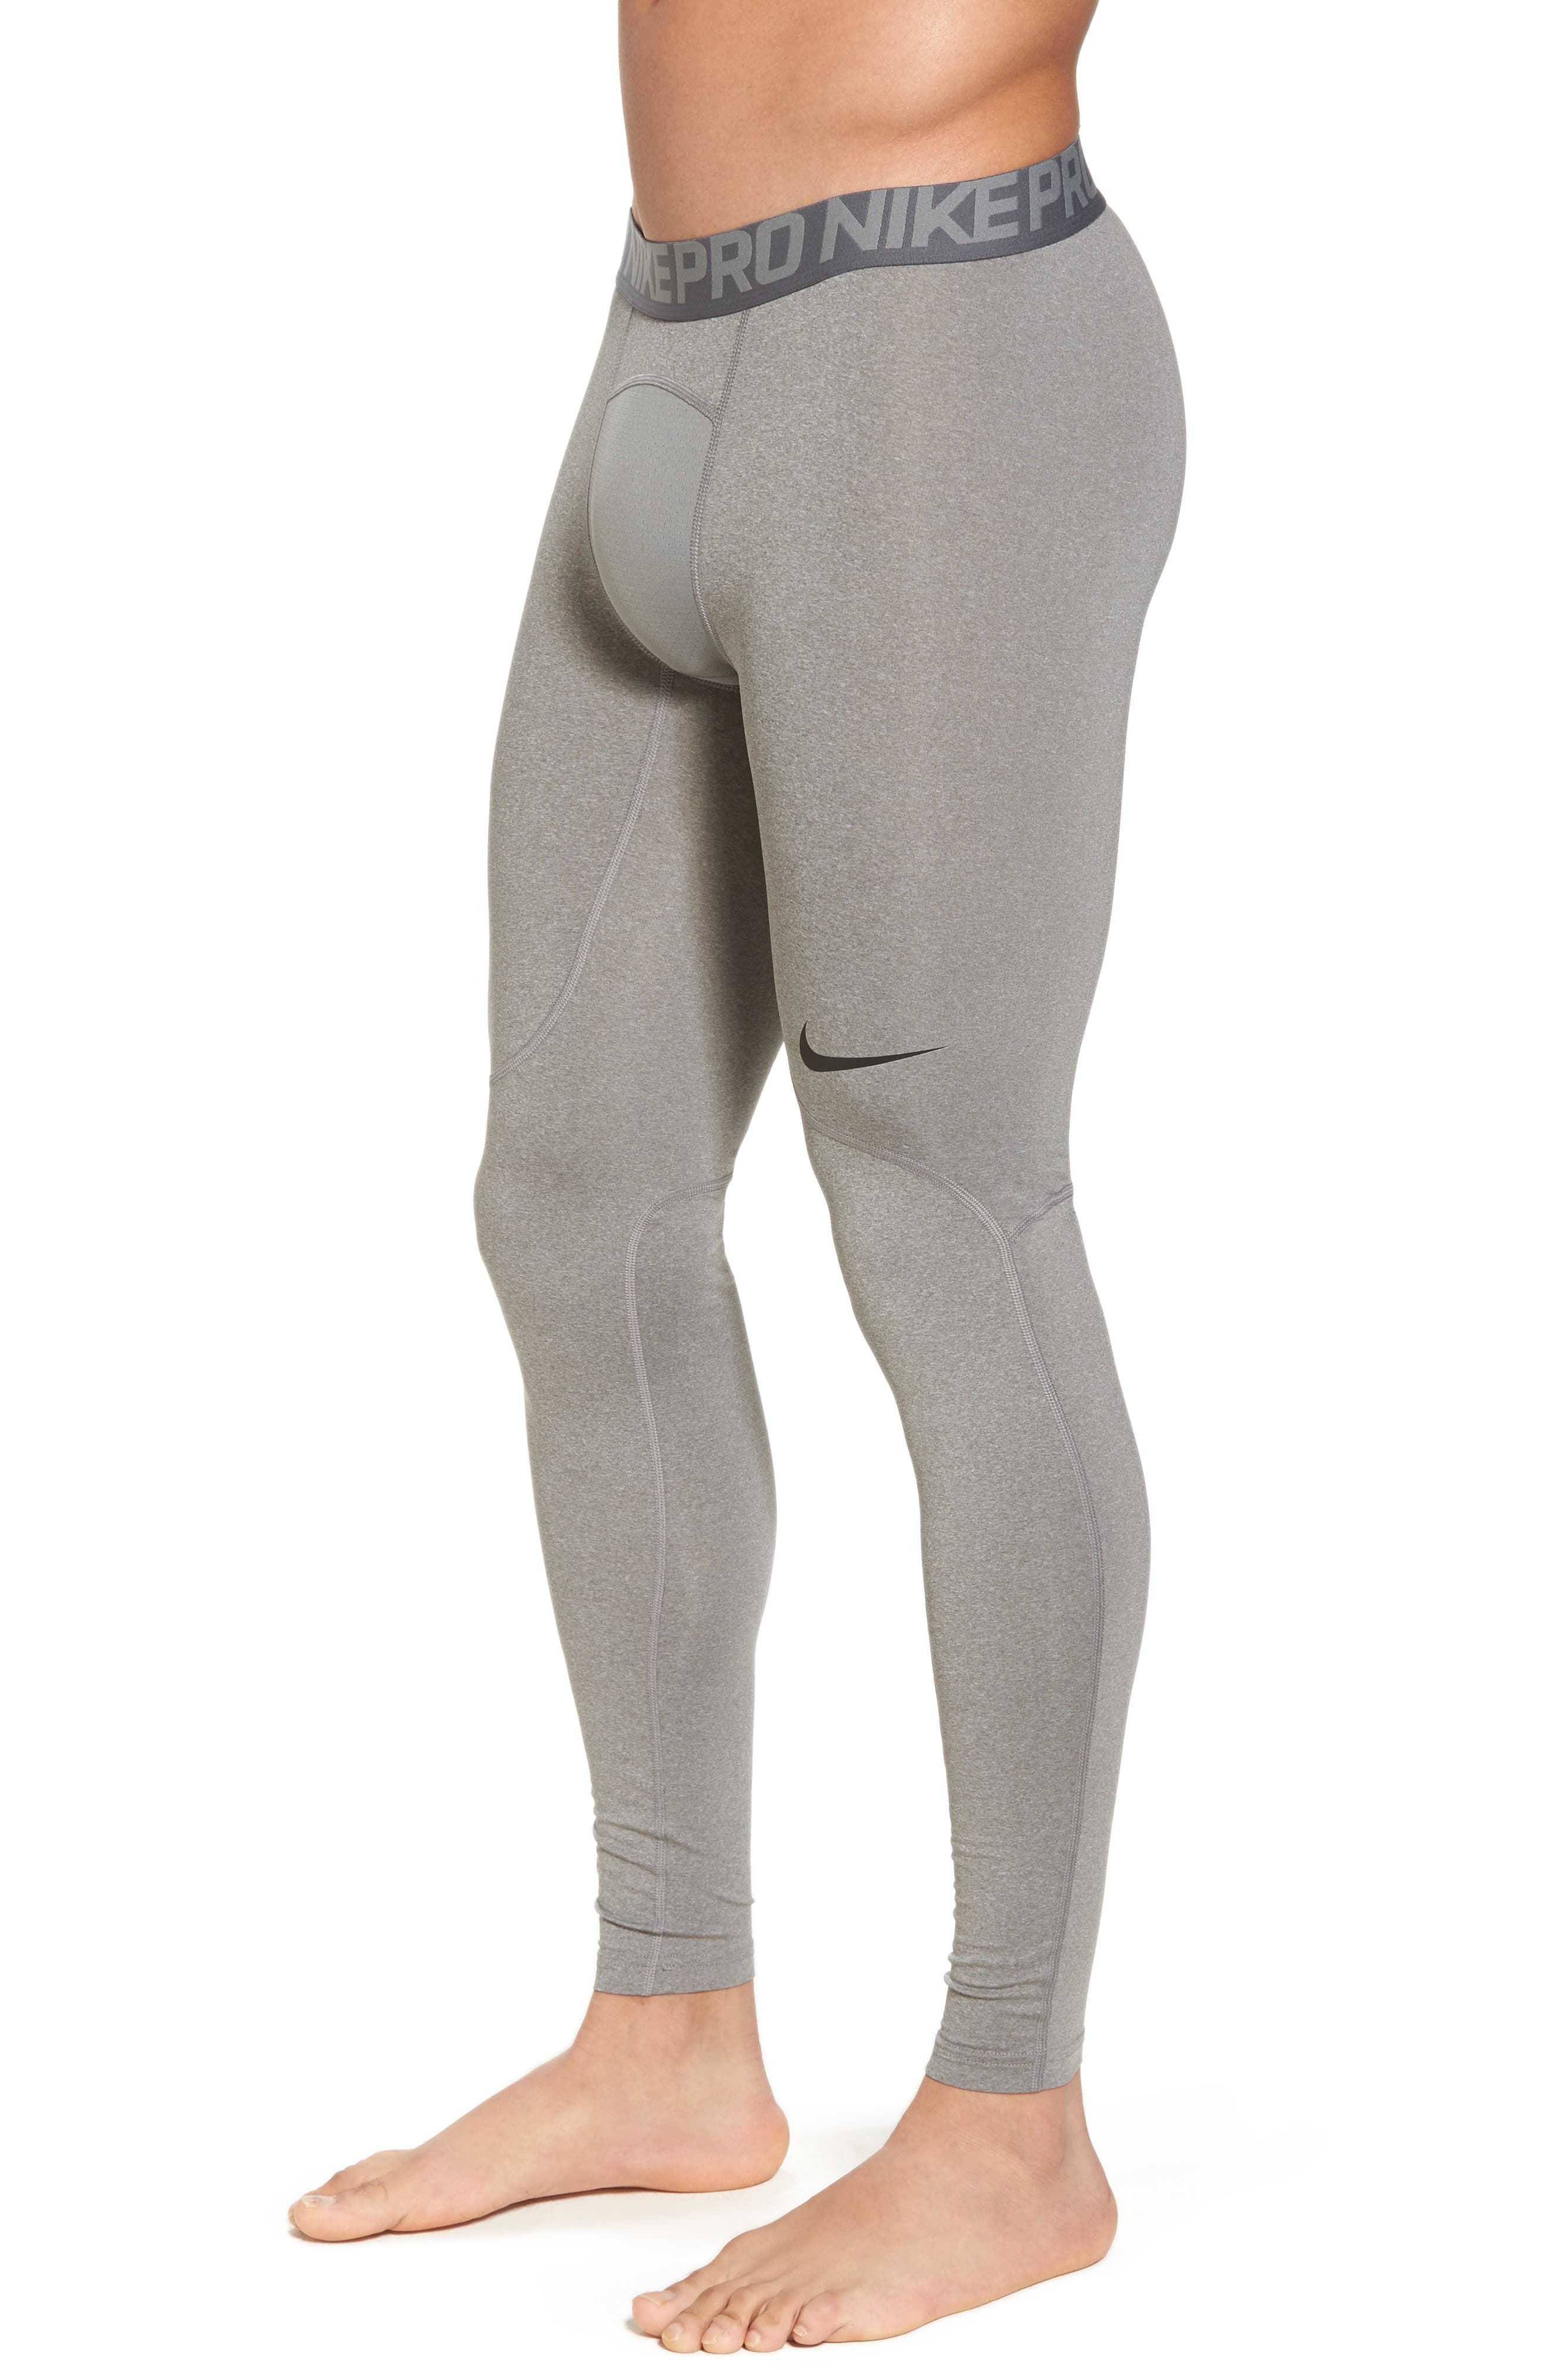 Pro Training Tights,                             Alternate thumbnail 3, color,                             Carbon Heather/Dark Grey/Black